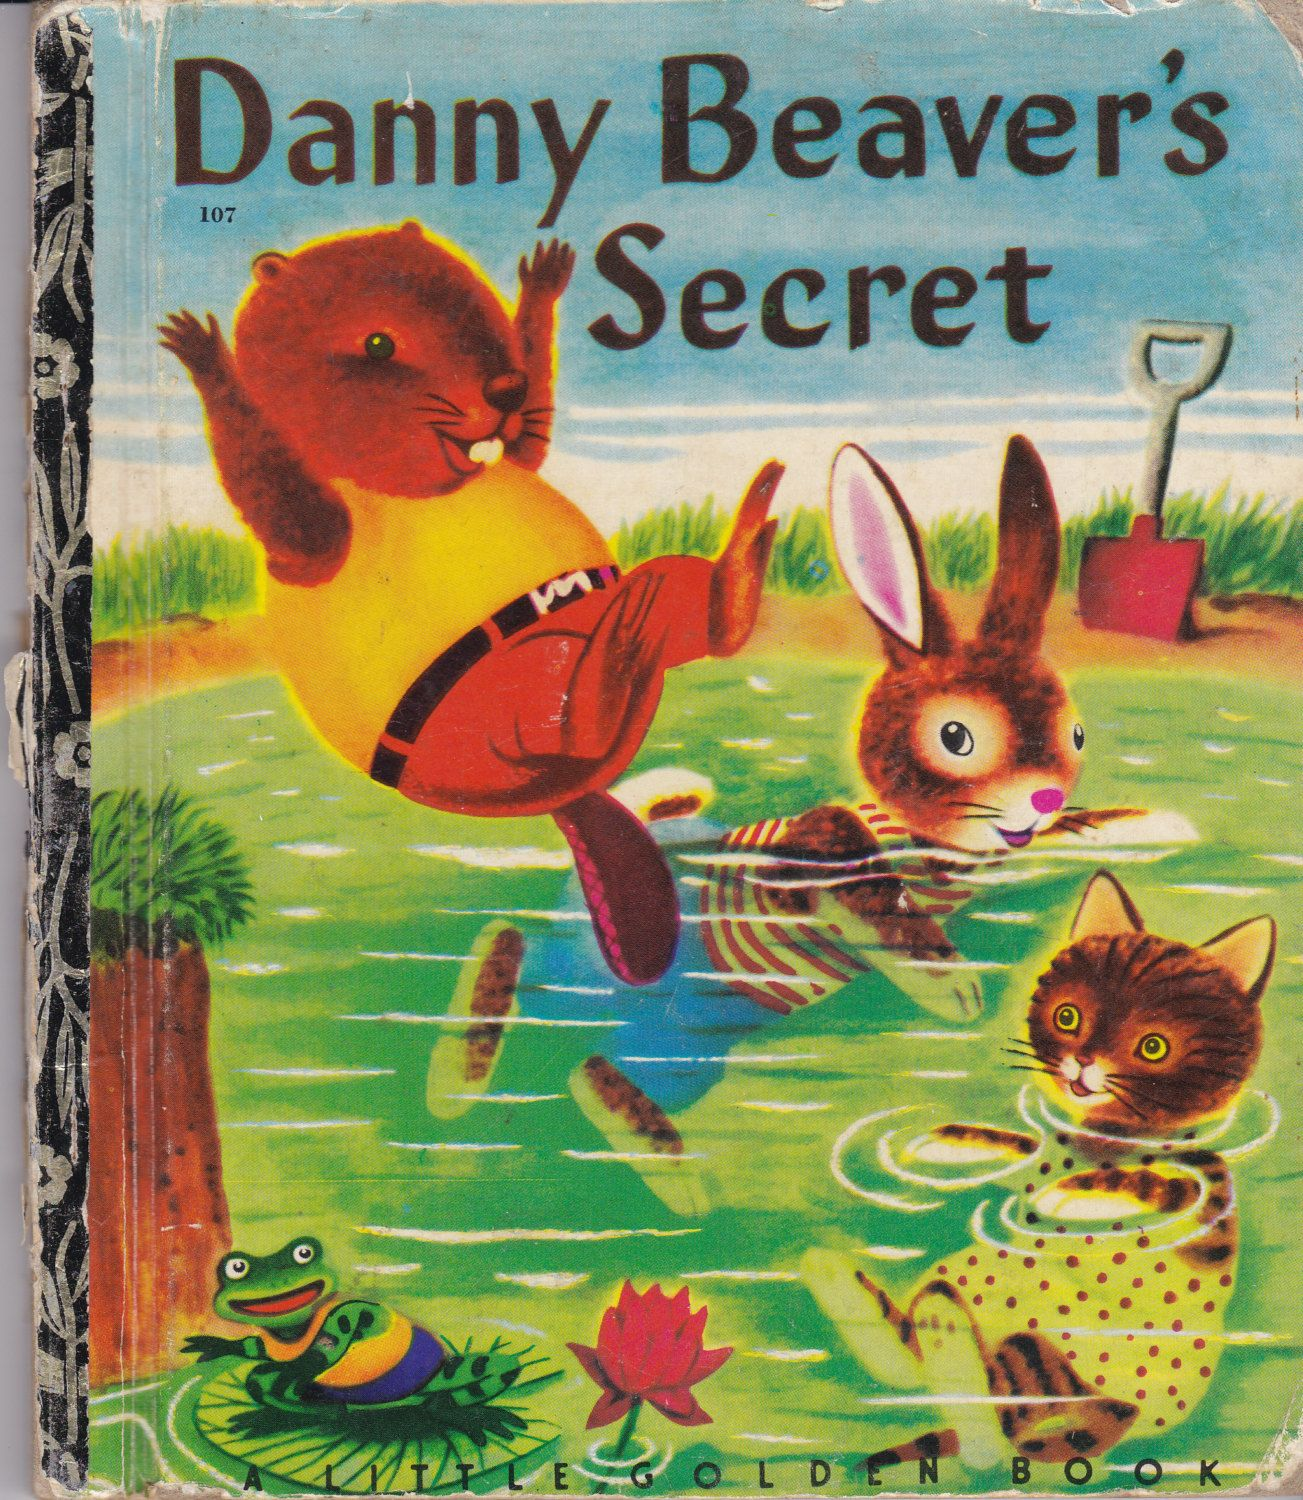 Libros Infantiles Antiguos Danny Beaver S Secret Litte Golden Books Pinterest Libro